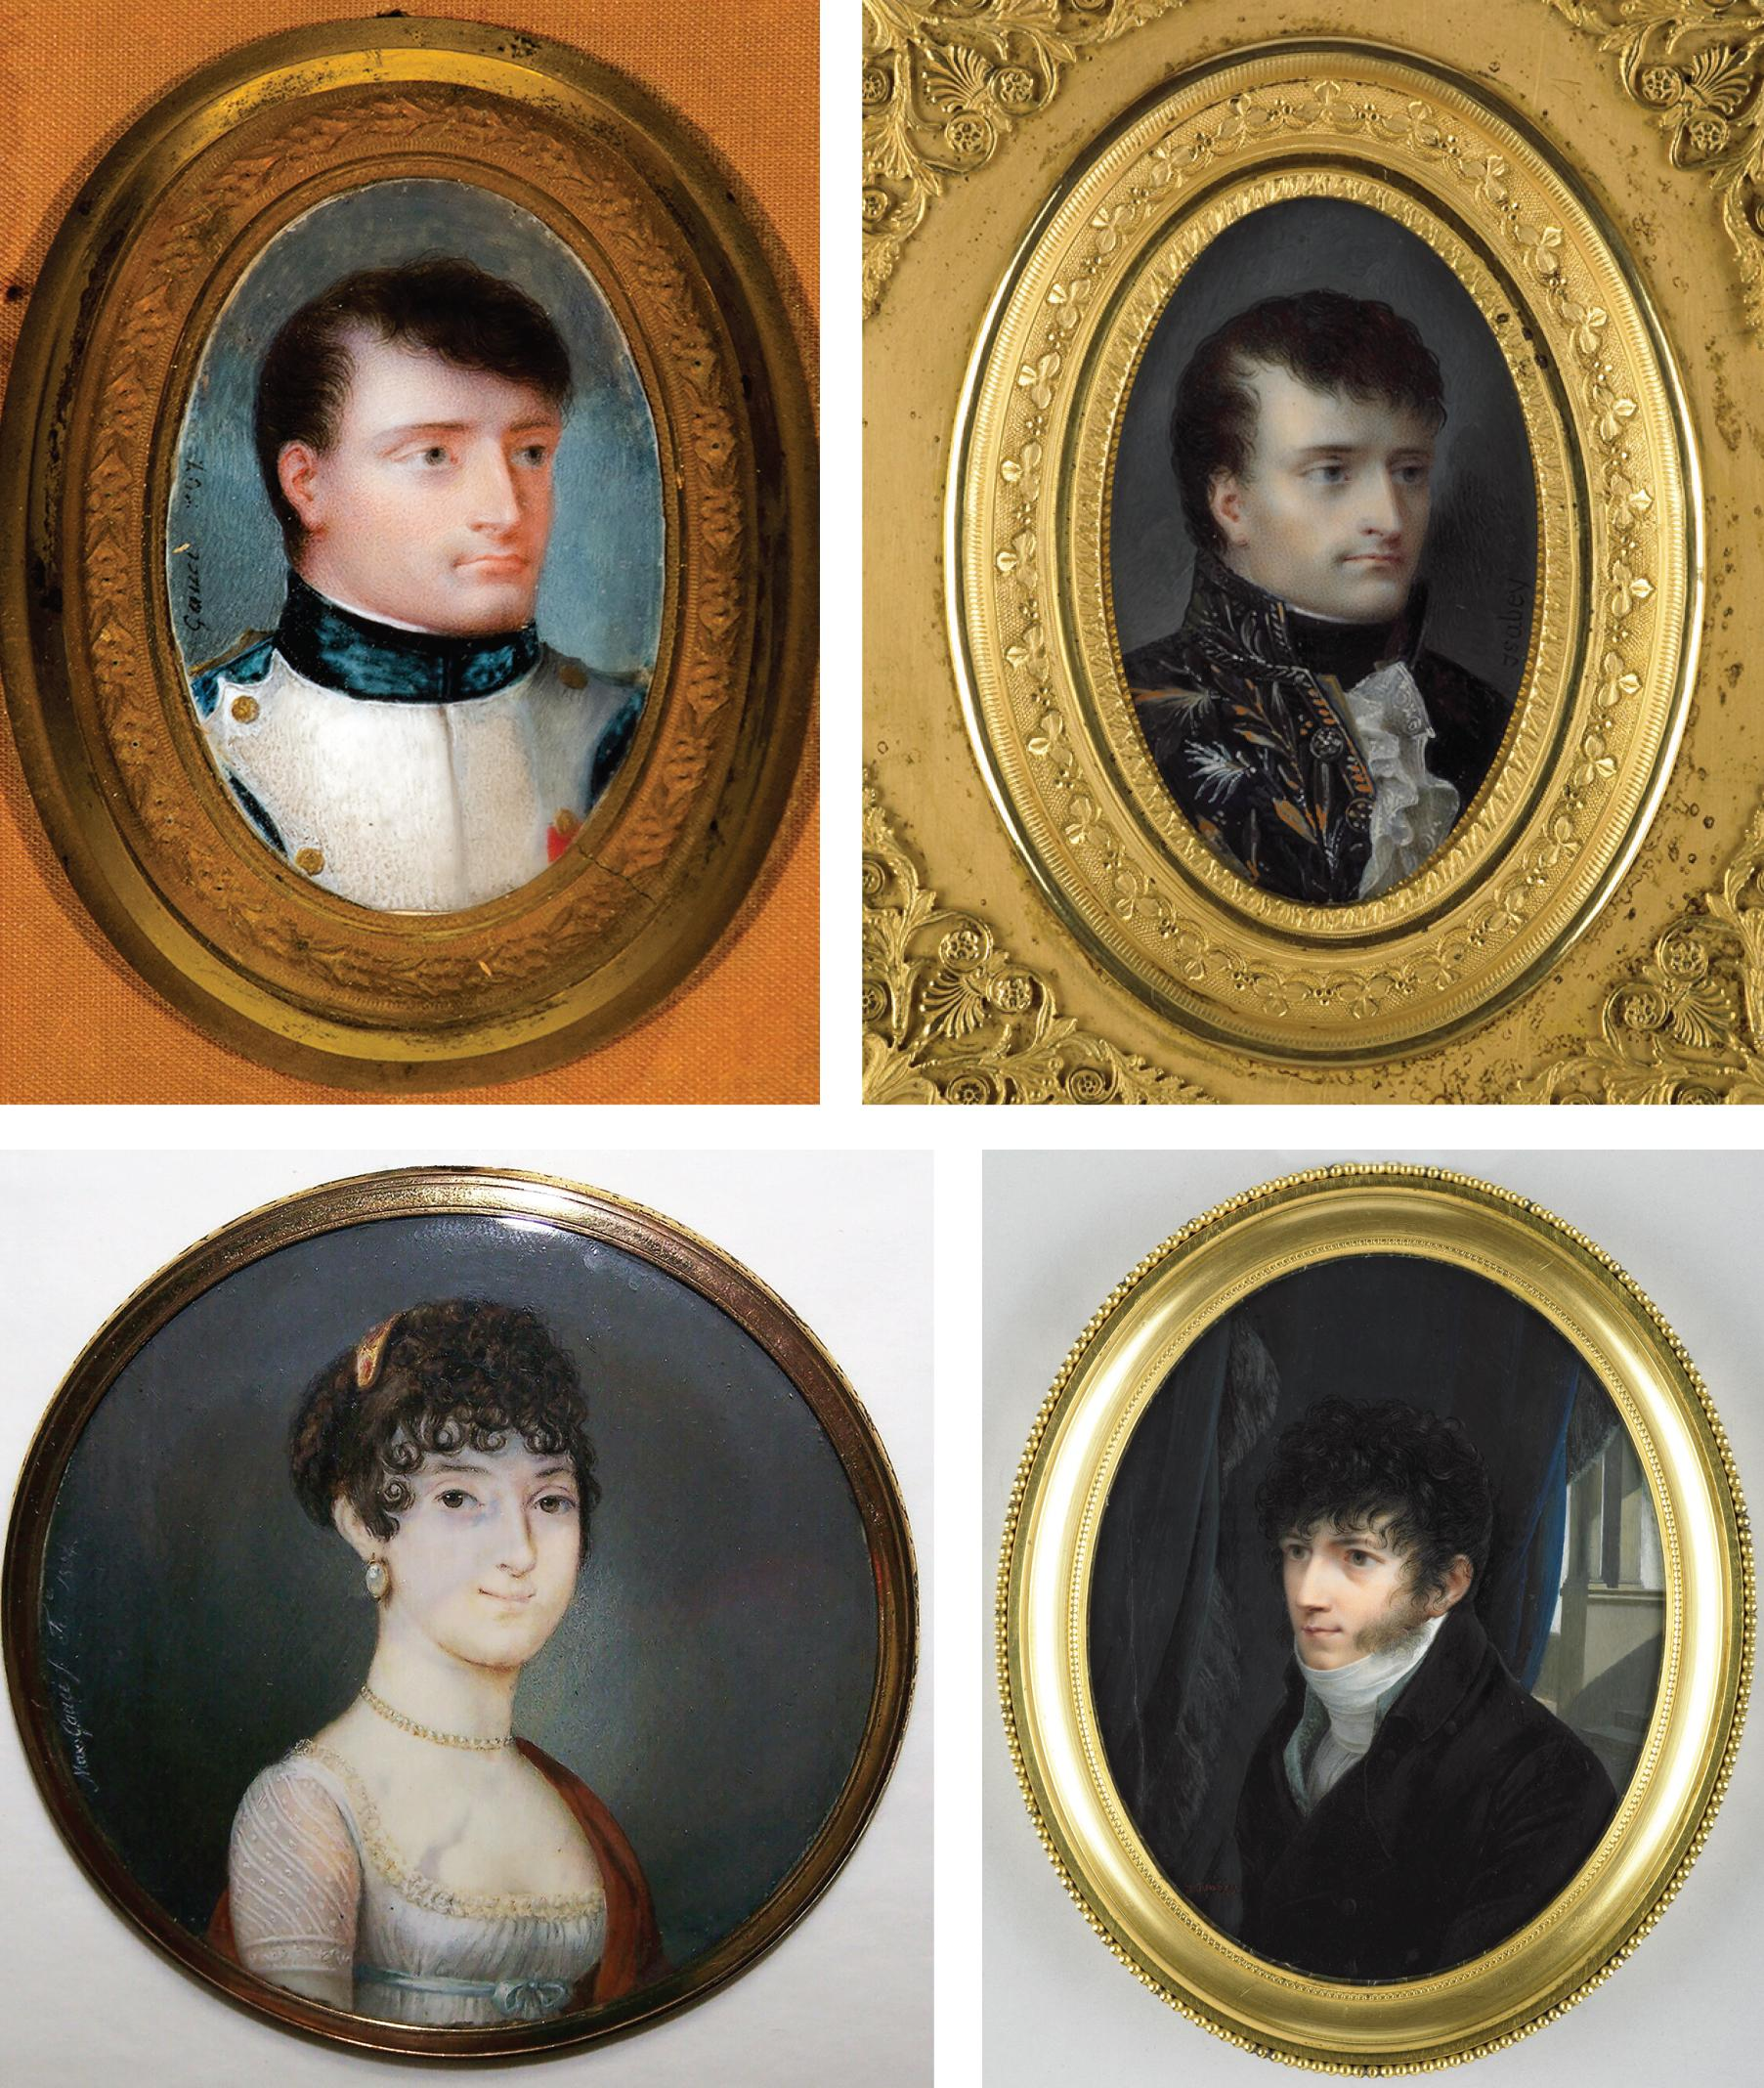 Top, left: Napoleon, (detail) by Maxim Gauci, 1807. Author's collection. Top, right: Napoleon, by Jean-Baptiste Isabey. Courtesy The Wallace collection. Bottow, left: Portrait of a Lady, by Maxim Gauci, 1804. Author's collection. Right: Self-portrait, Jean-Baptiste Isabey. Courtesy The Wallace Collection